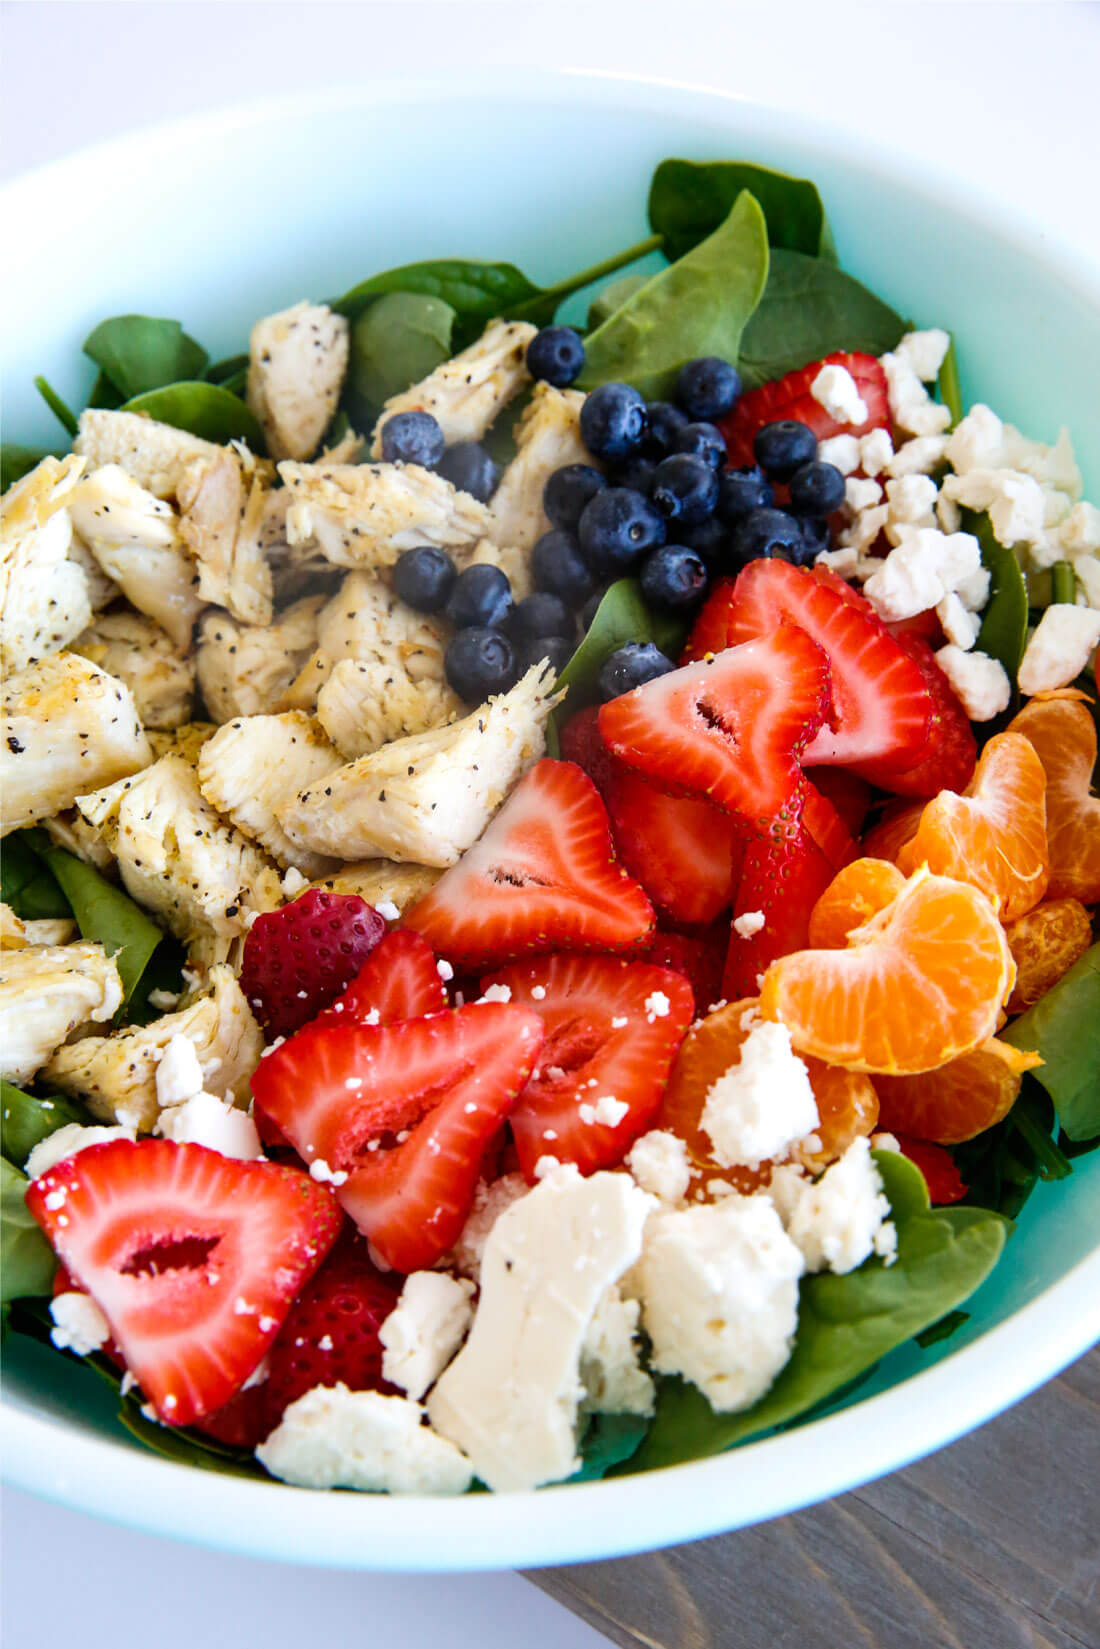 Berries and Chicken Spinach Salad - a tasty, healthy salad that is super easy to make. from thirtyhandmadedays.com